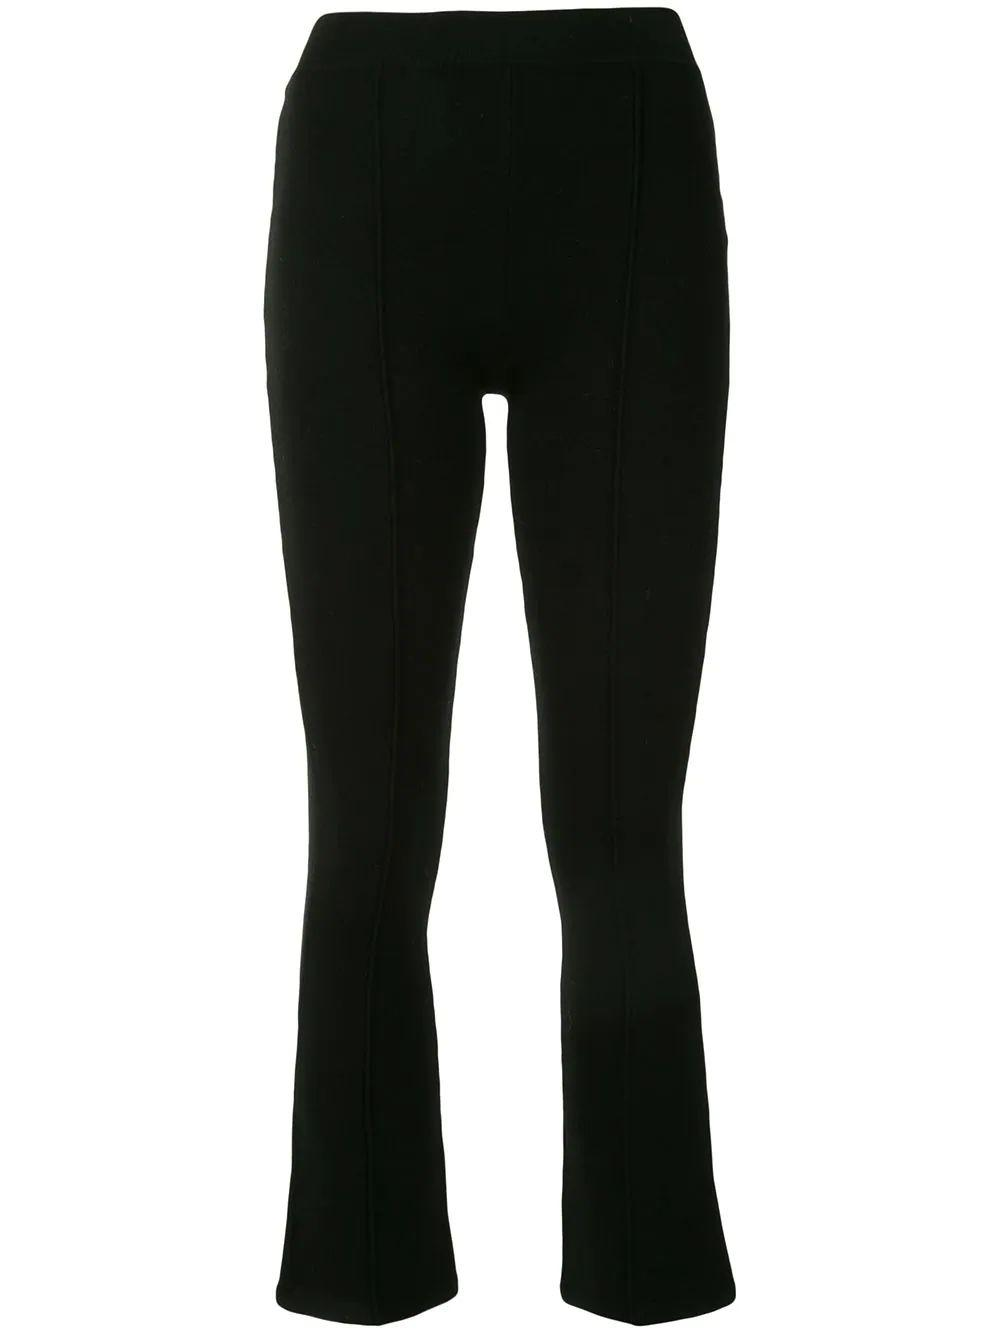 Brianna Compact Knit Cropped Pant